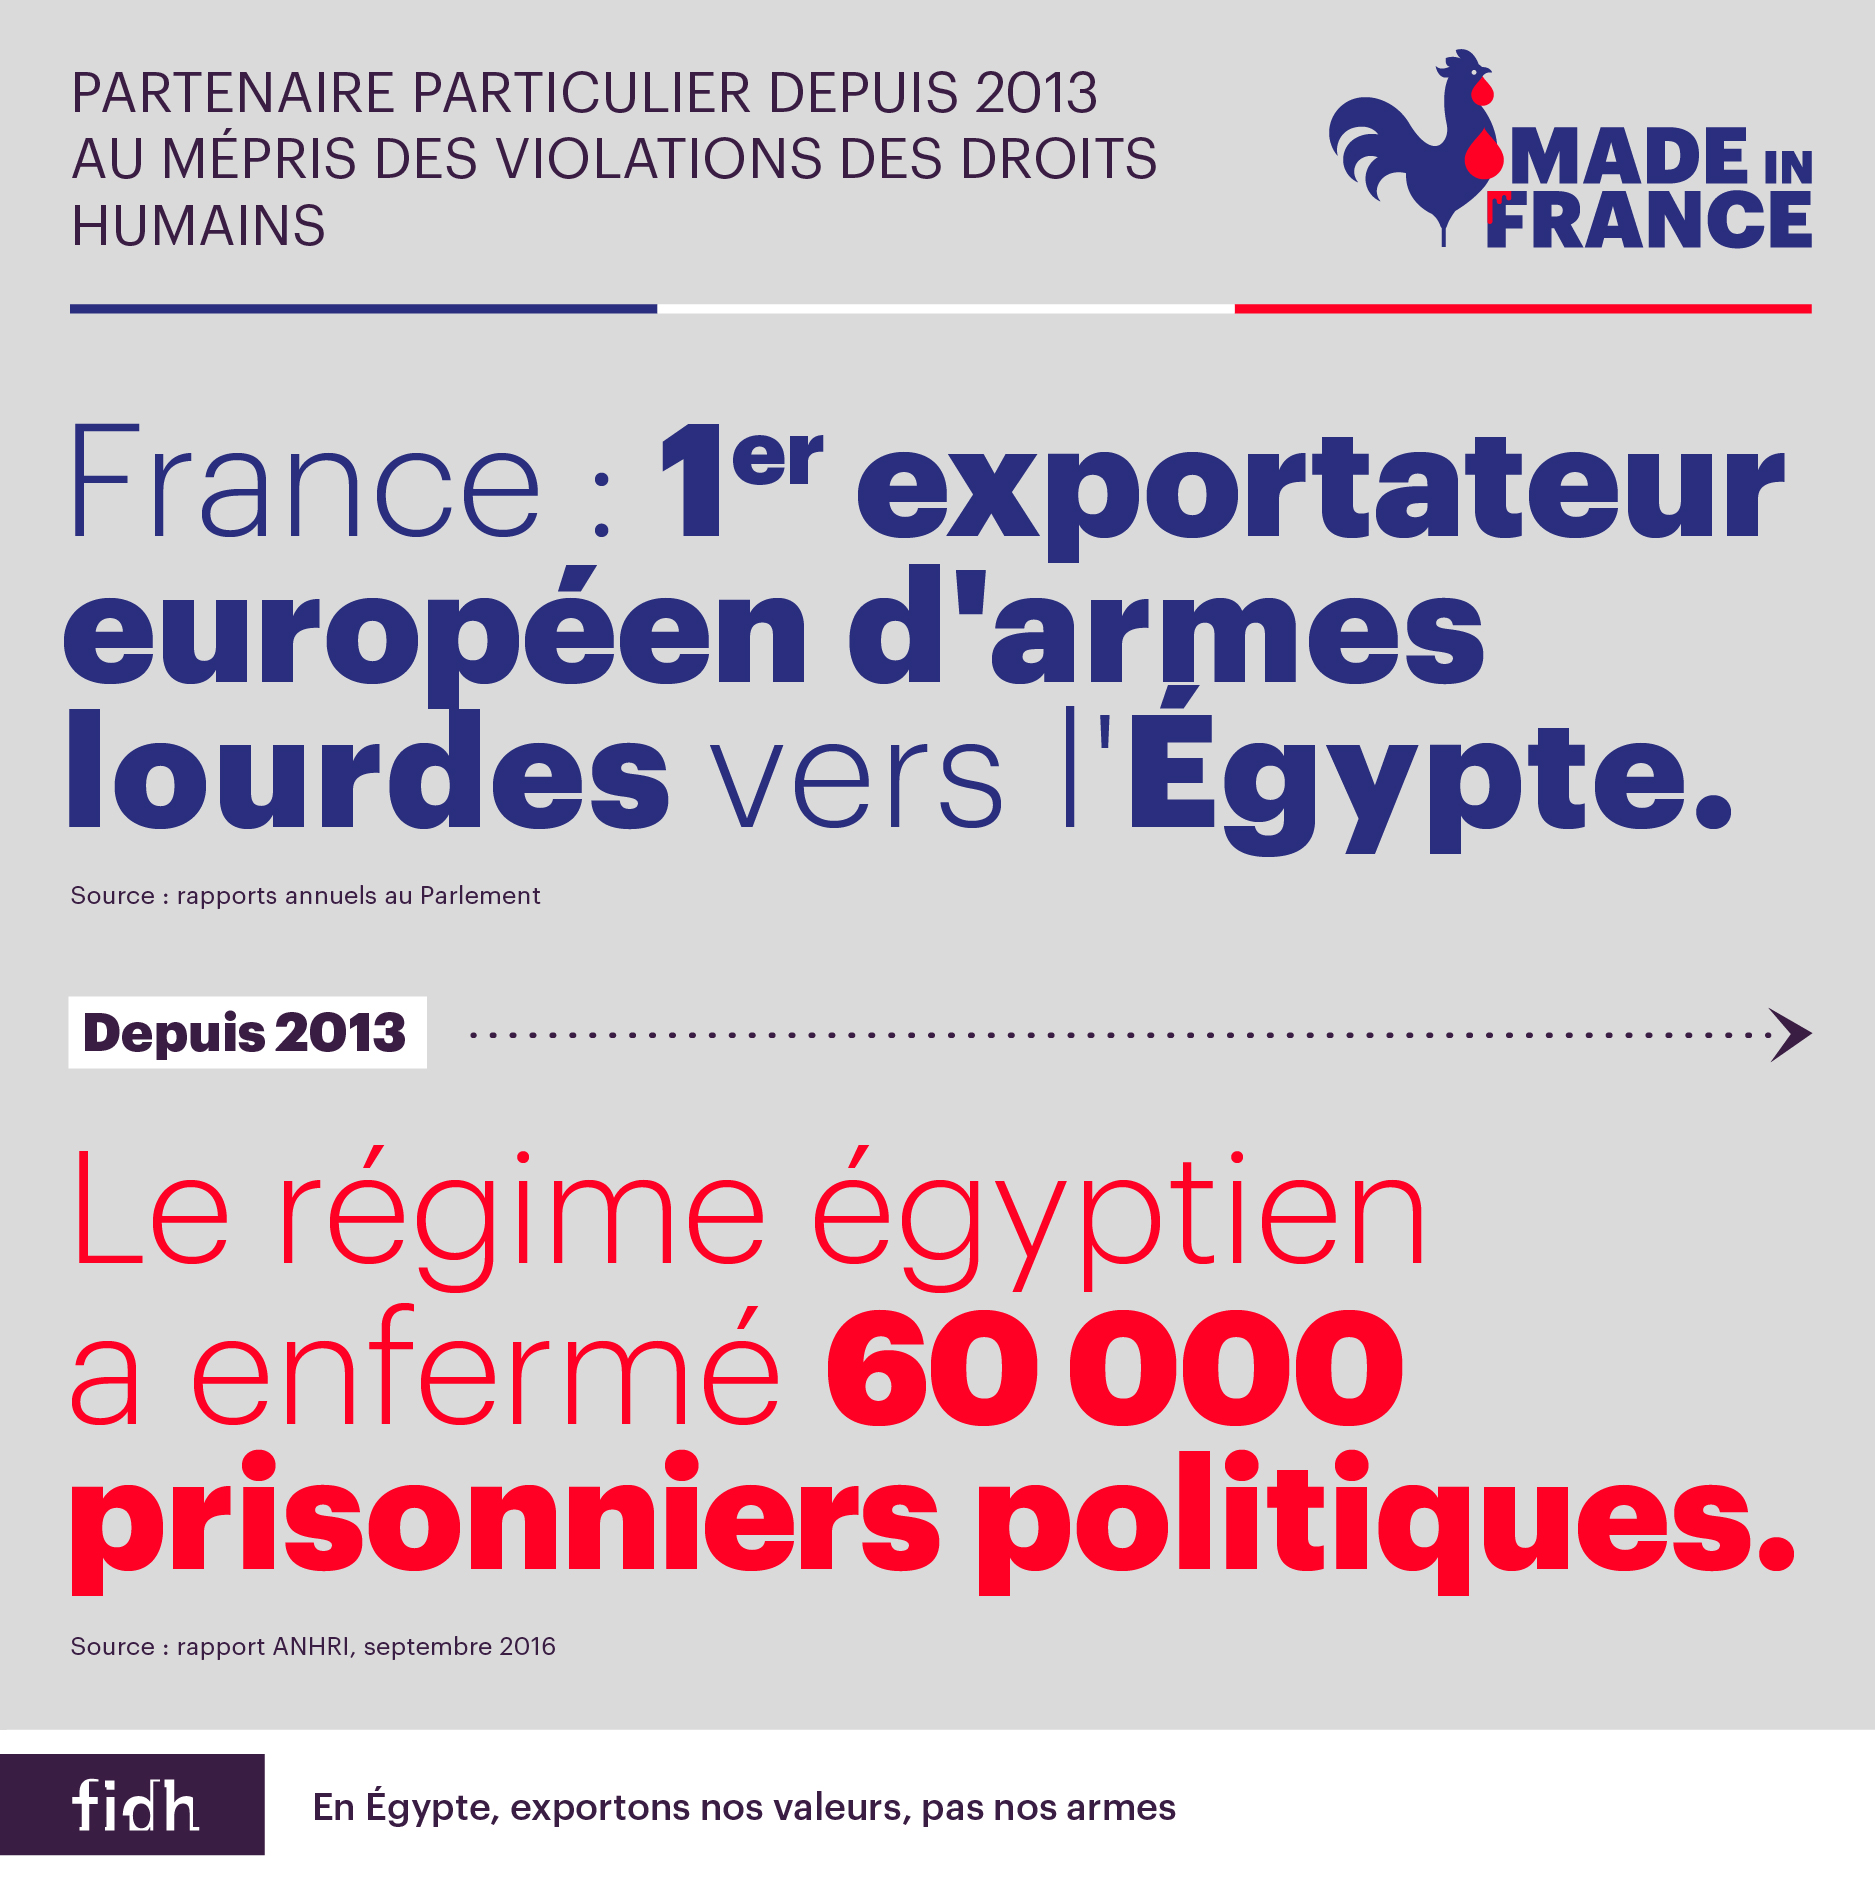 FIDH_MADEINFRANCE_01